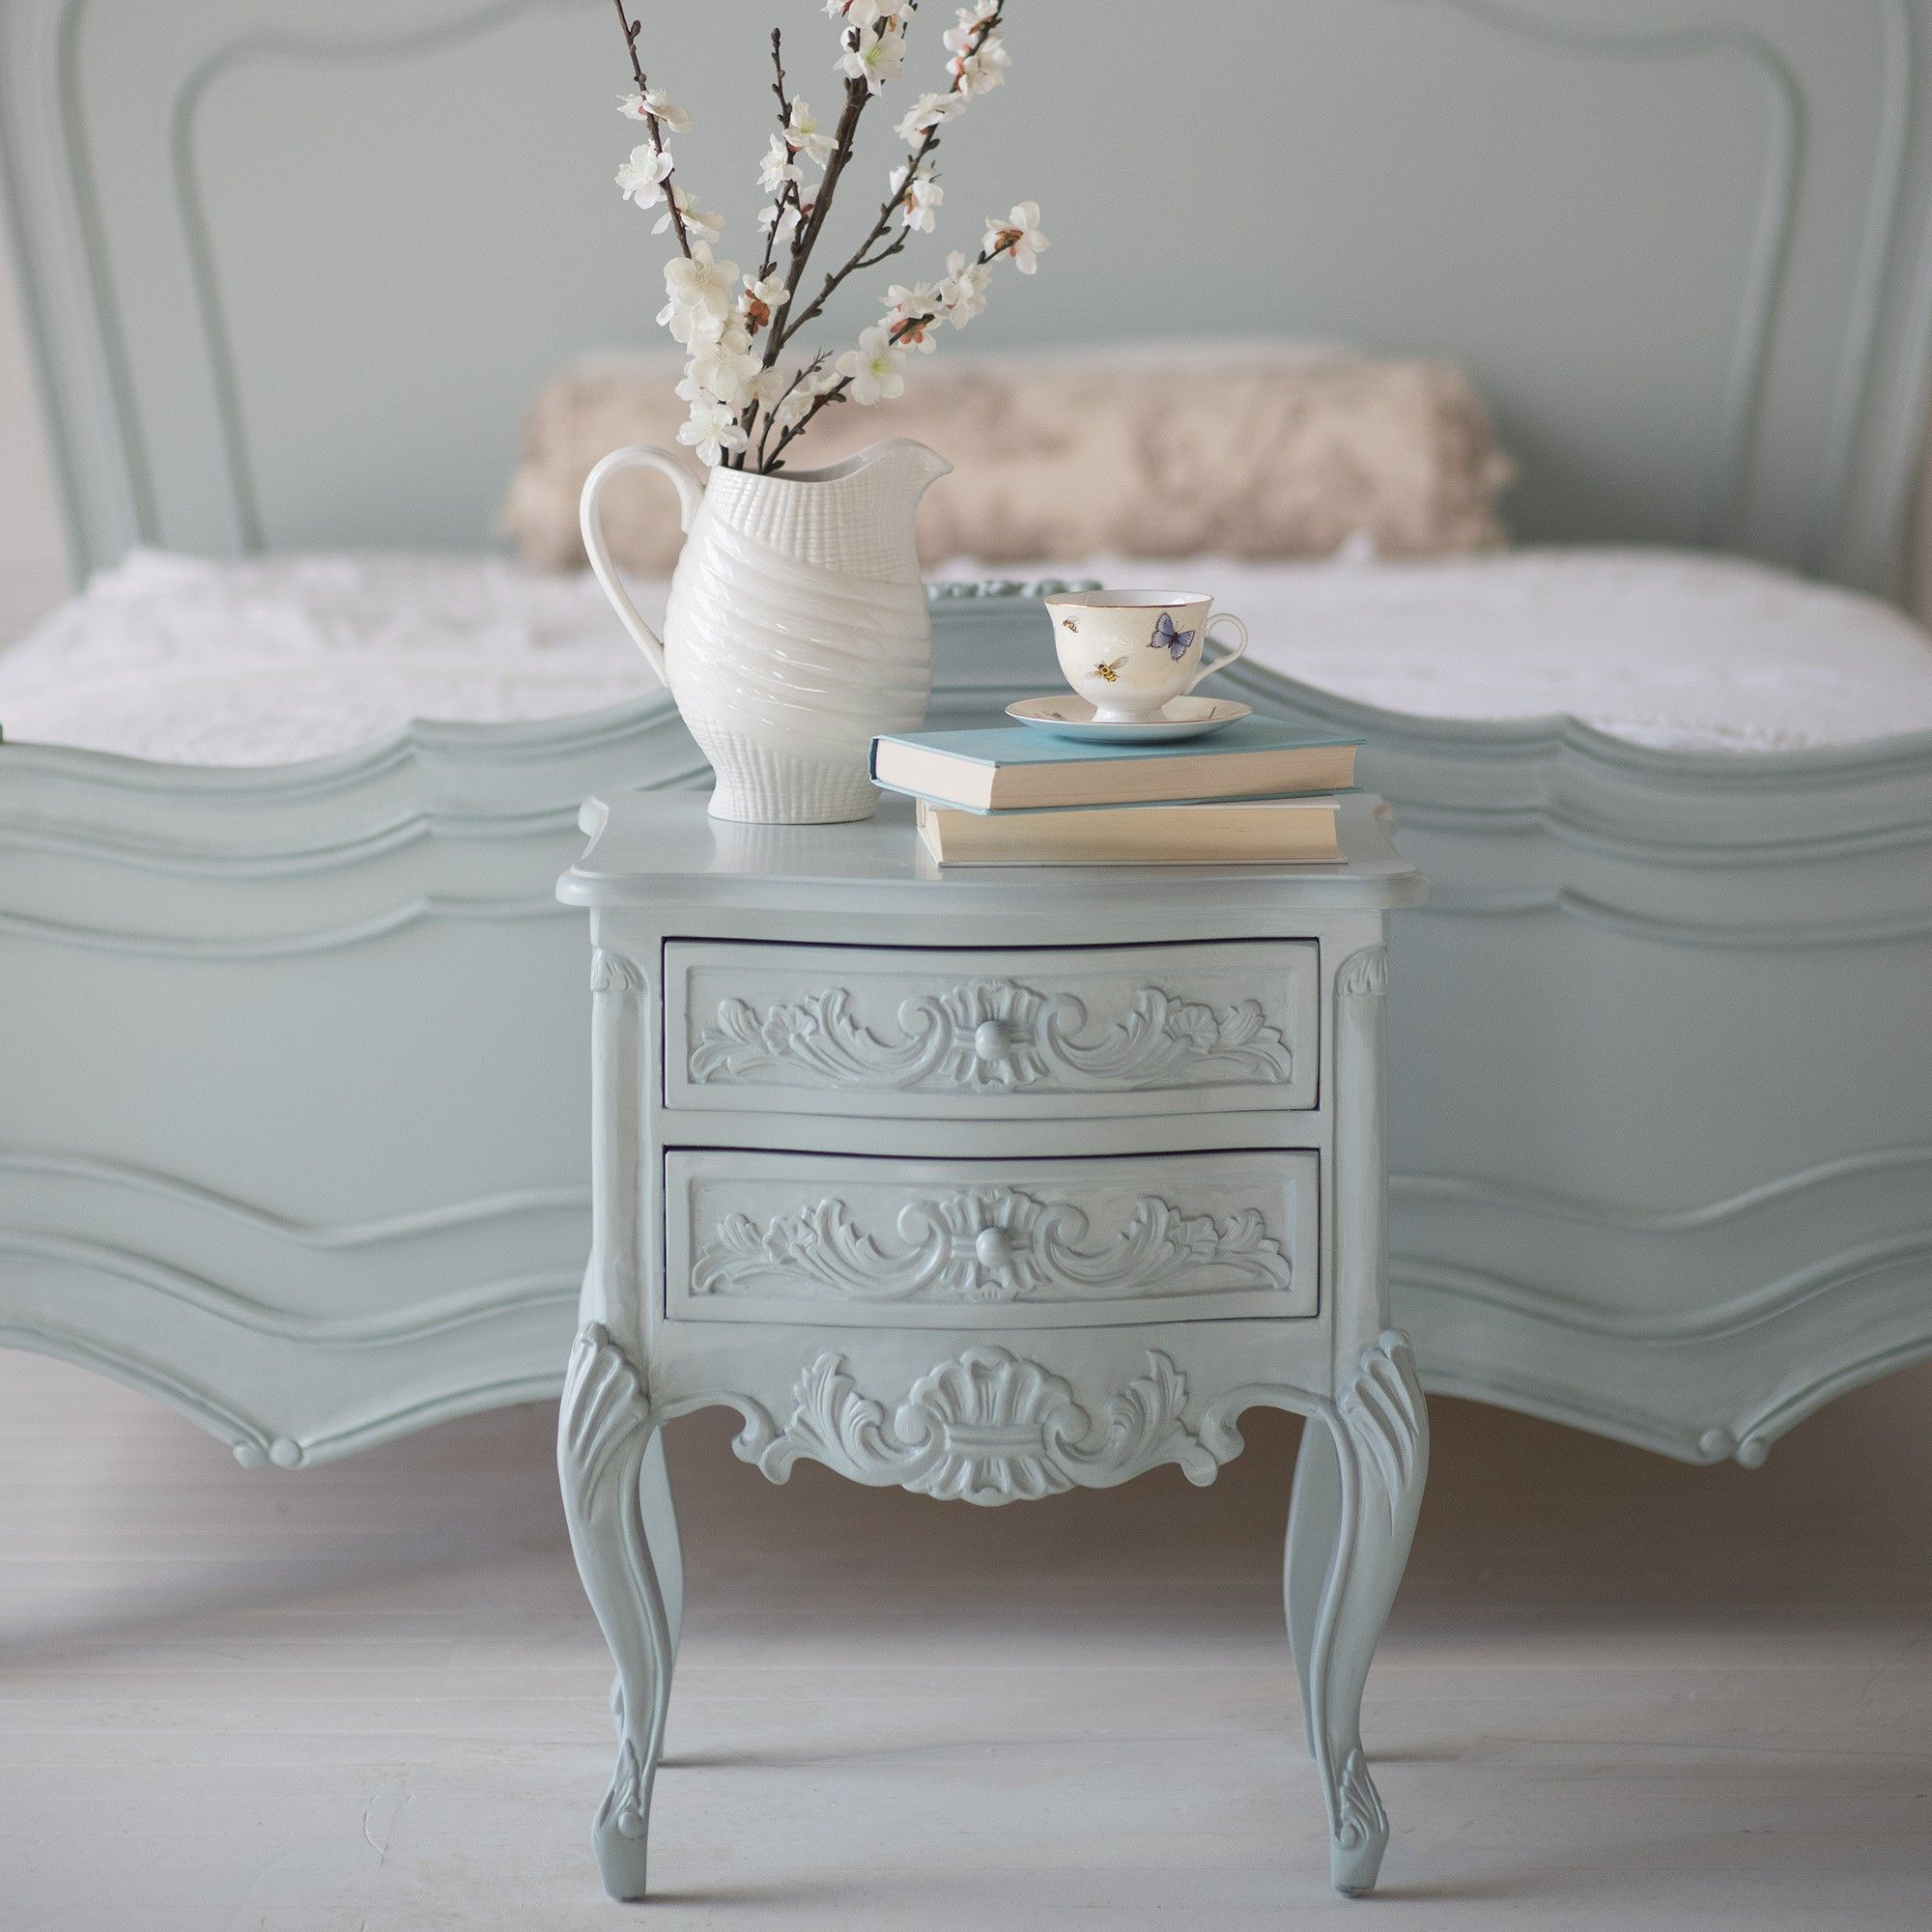 Nightstand Decor Ideas  Your Bedside Table Can Be More